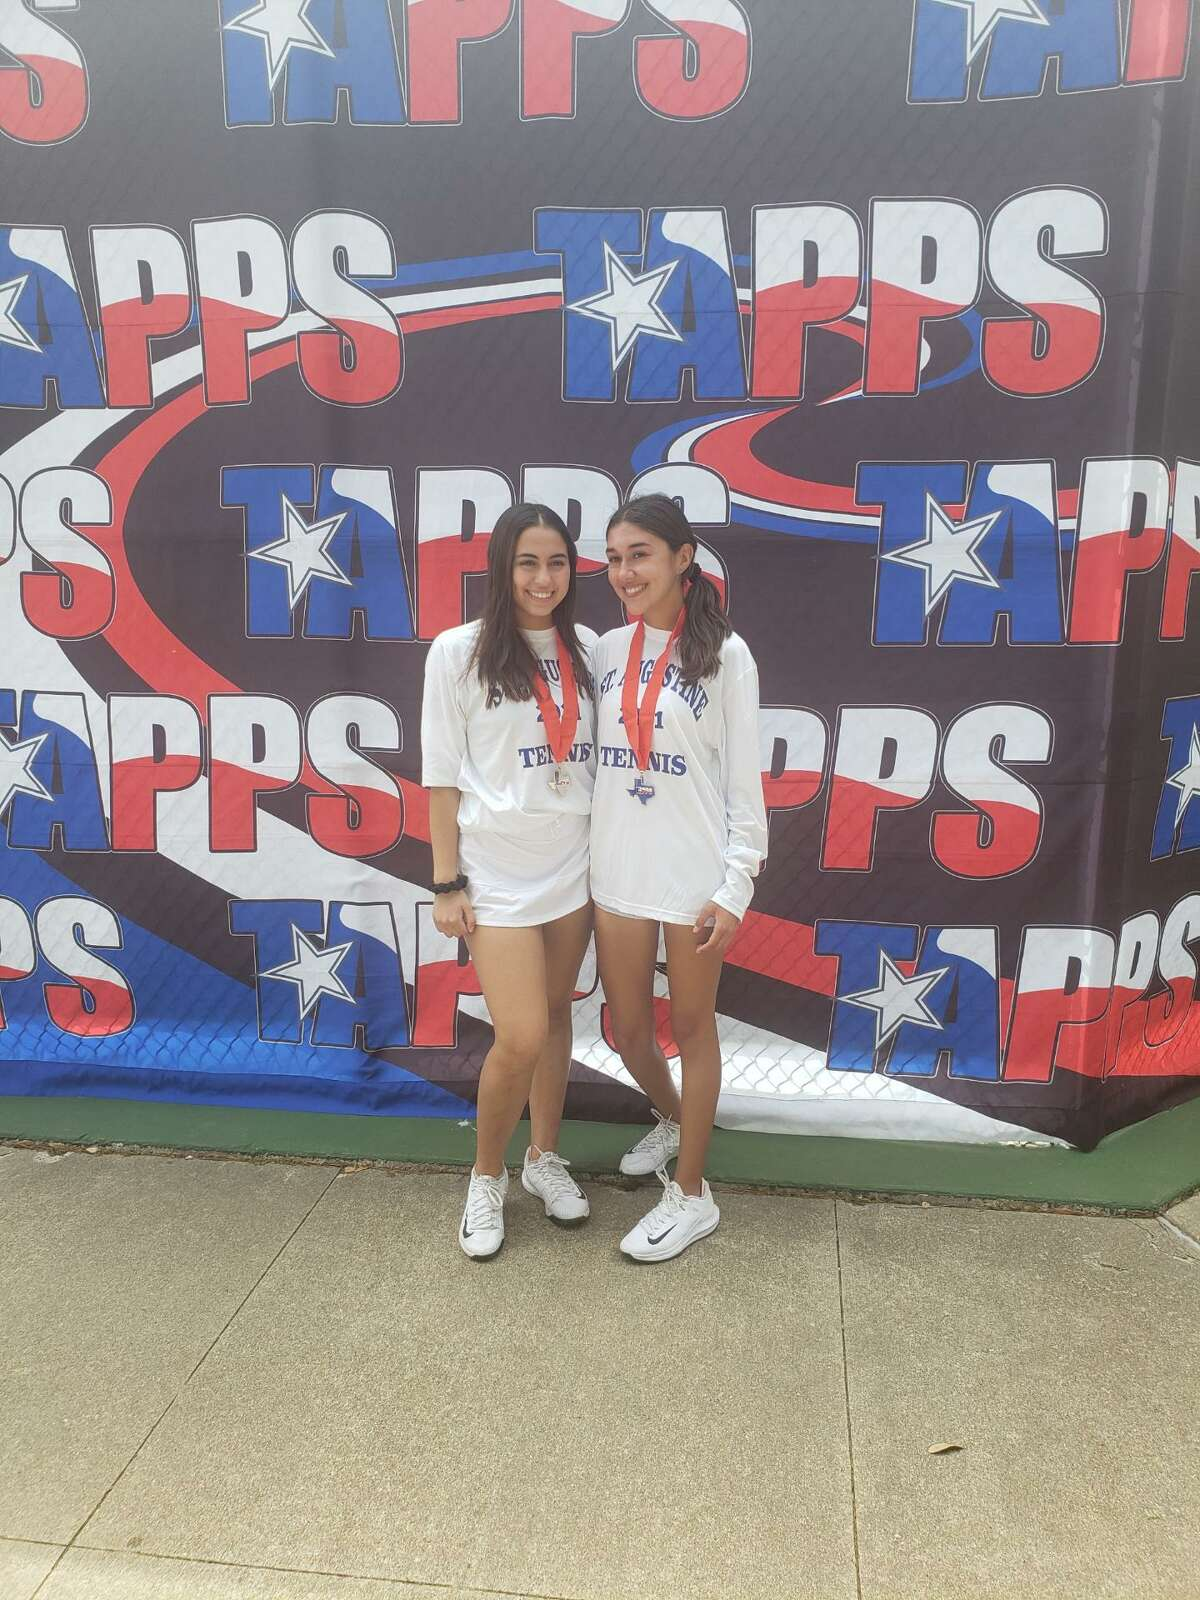 St. Augustine duo Amelie Quesada and Ali Garcia finished second in girls' doubles at the TAPPS 5A State meet on Wednesday.